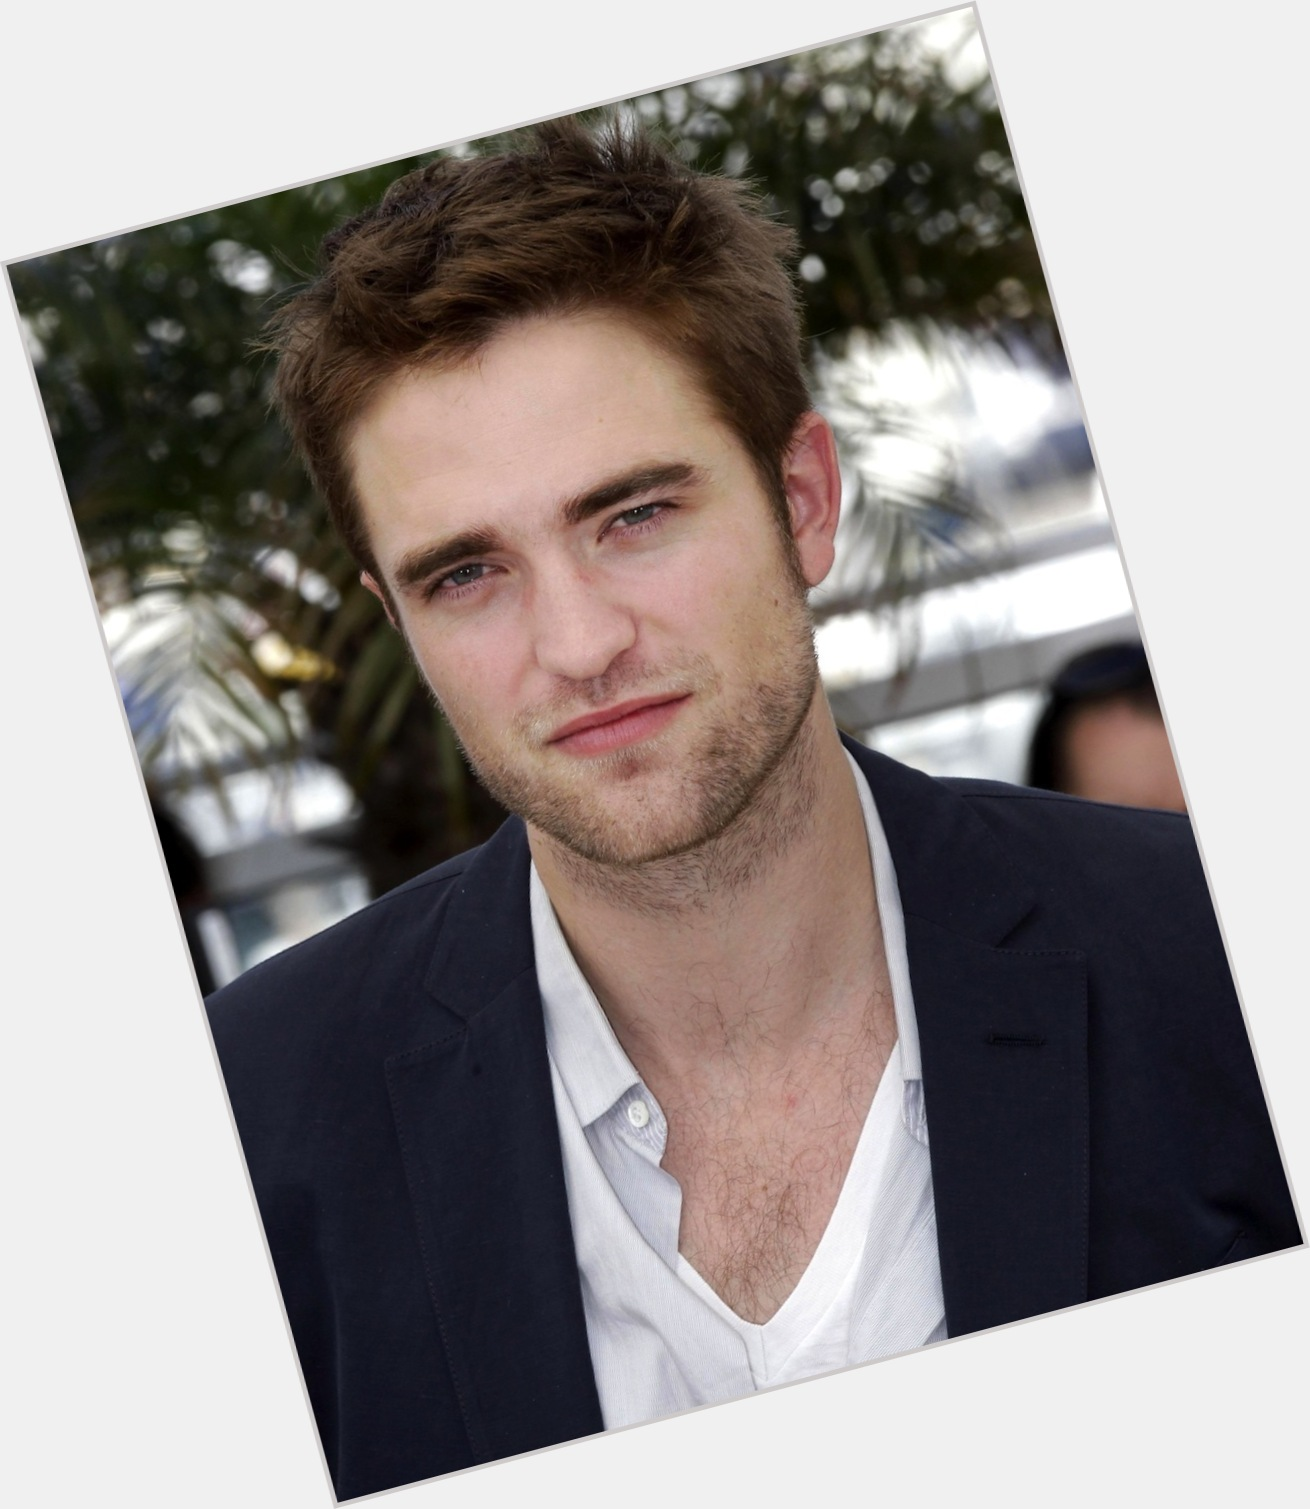 robert pattinson body 0.jpg